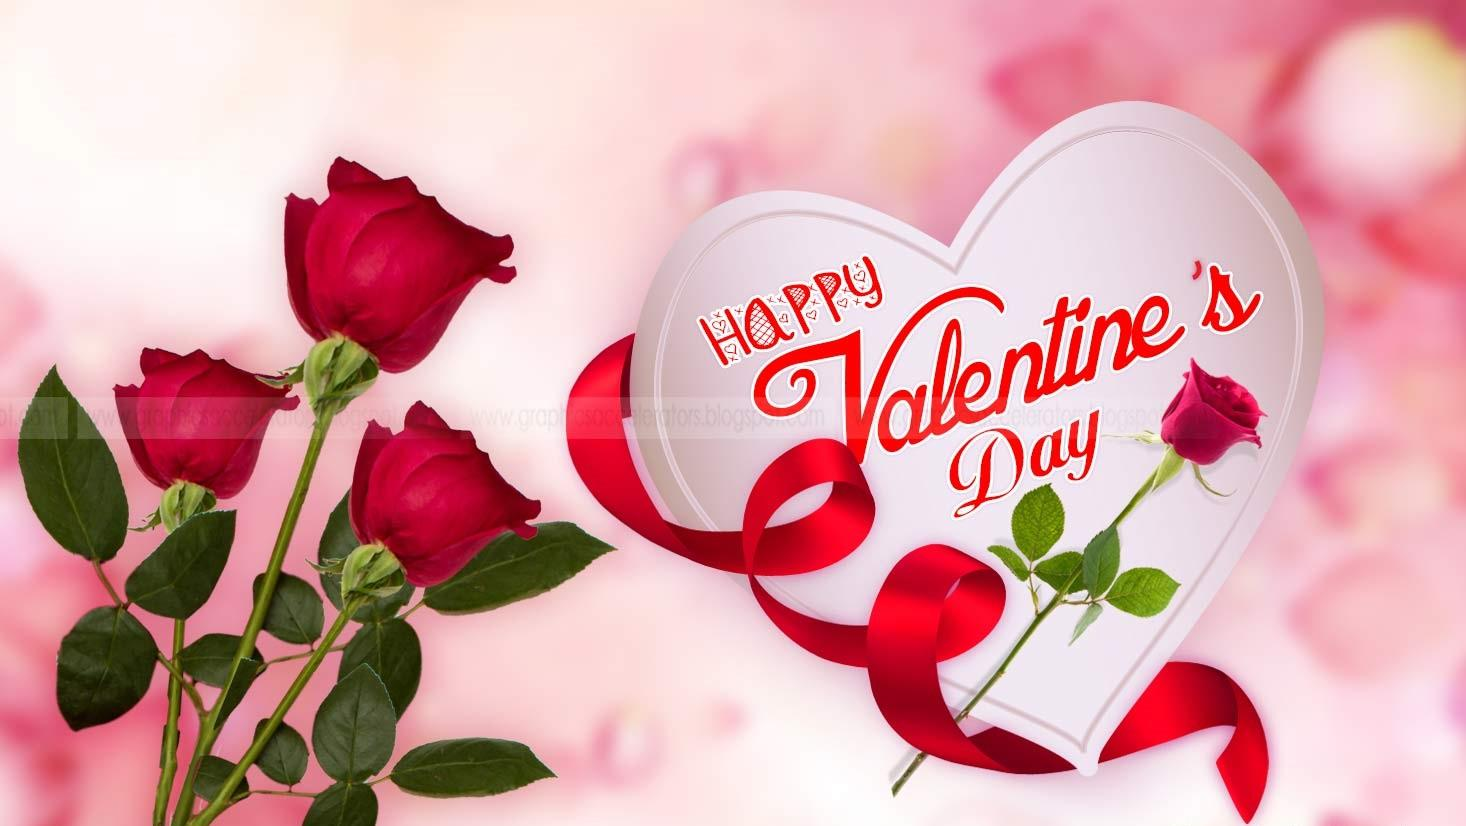 50 Best Happy Valentines Day Wishes, Images For Whatsapp & Facebook ...